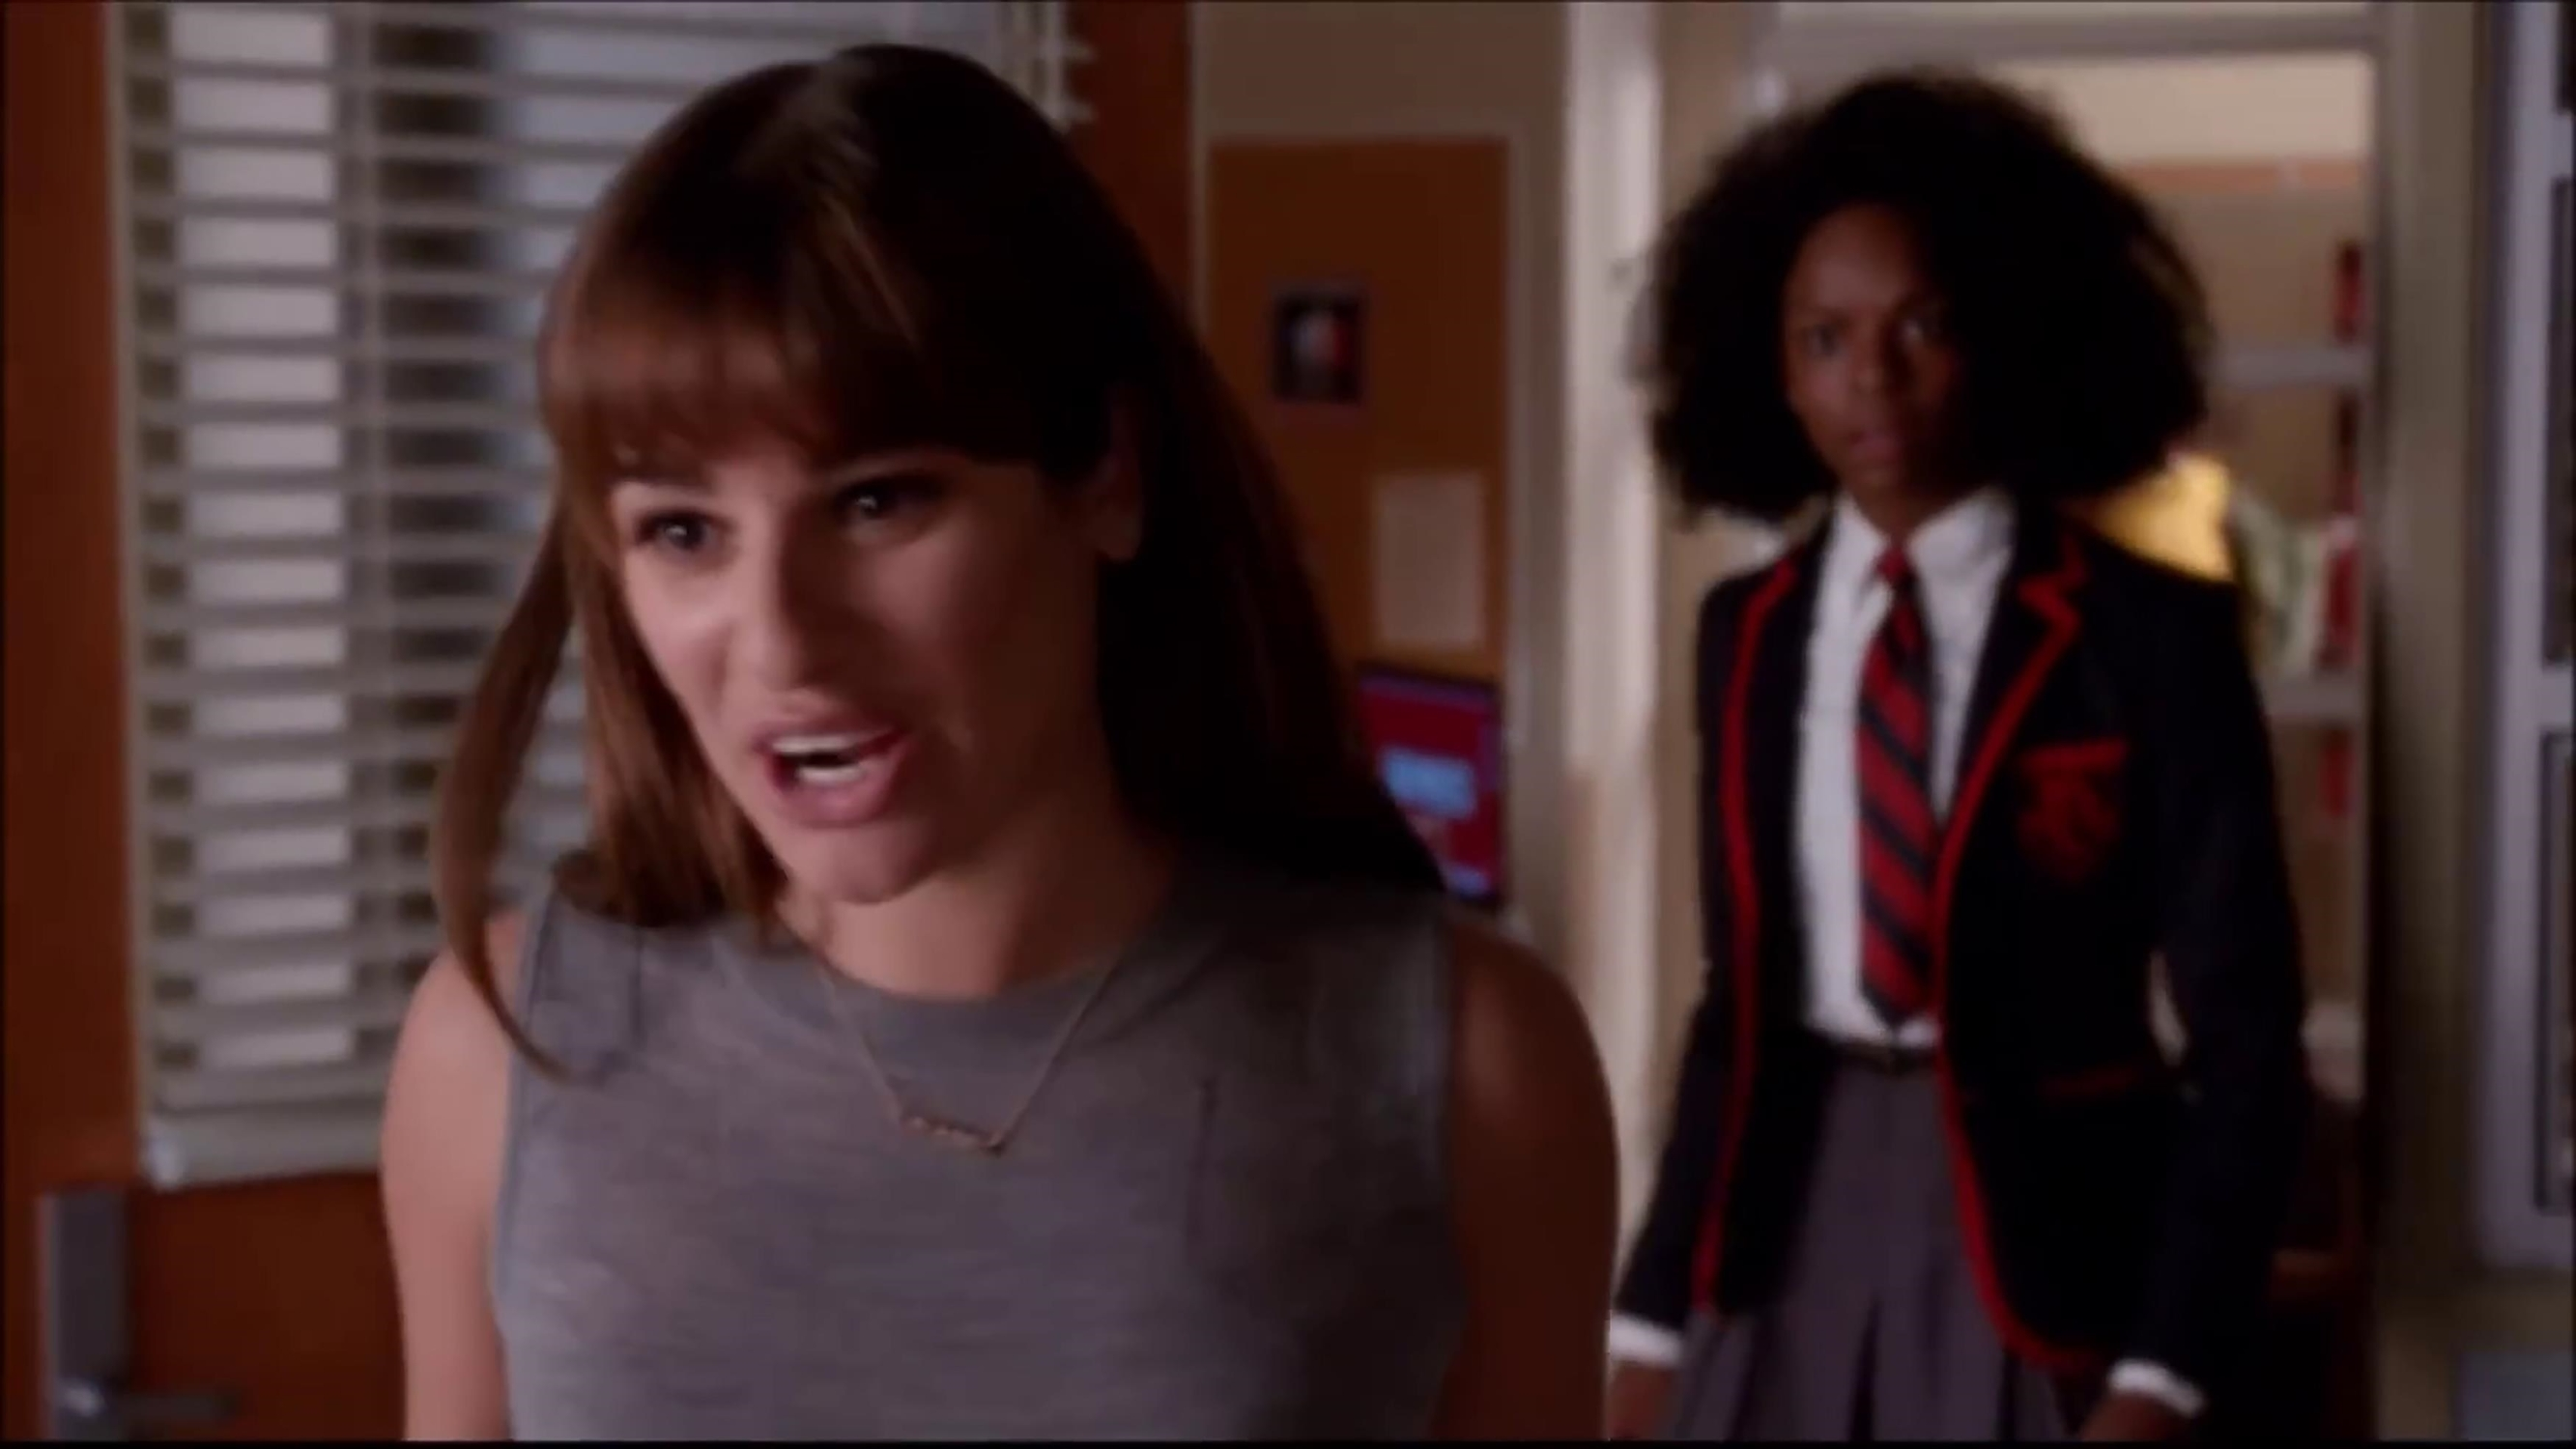 Los Angeles,   - Lea Michele accused of making former Glee co-star Samantha Ware's life a 'living hell'     ---------           *  USA: +1 310 798 9111 / usasales@backgrid.com  *UK Clients - Pictures Containing Children Please Pixelate Face Prior To Publication*,Image: 526206491, License: Rights-managed, Restrictions: RIGHTS: WORLDWIDE EXCEPT IN UNITED STATES, Model Release: no, Credit line: BACKGRID / Backgrid UK / Profimedia